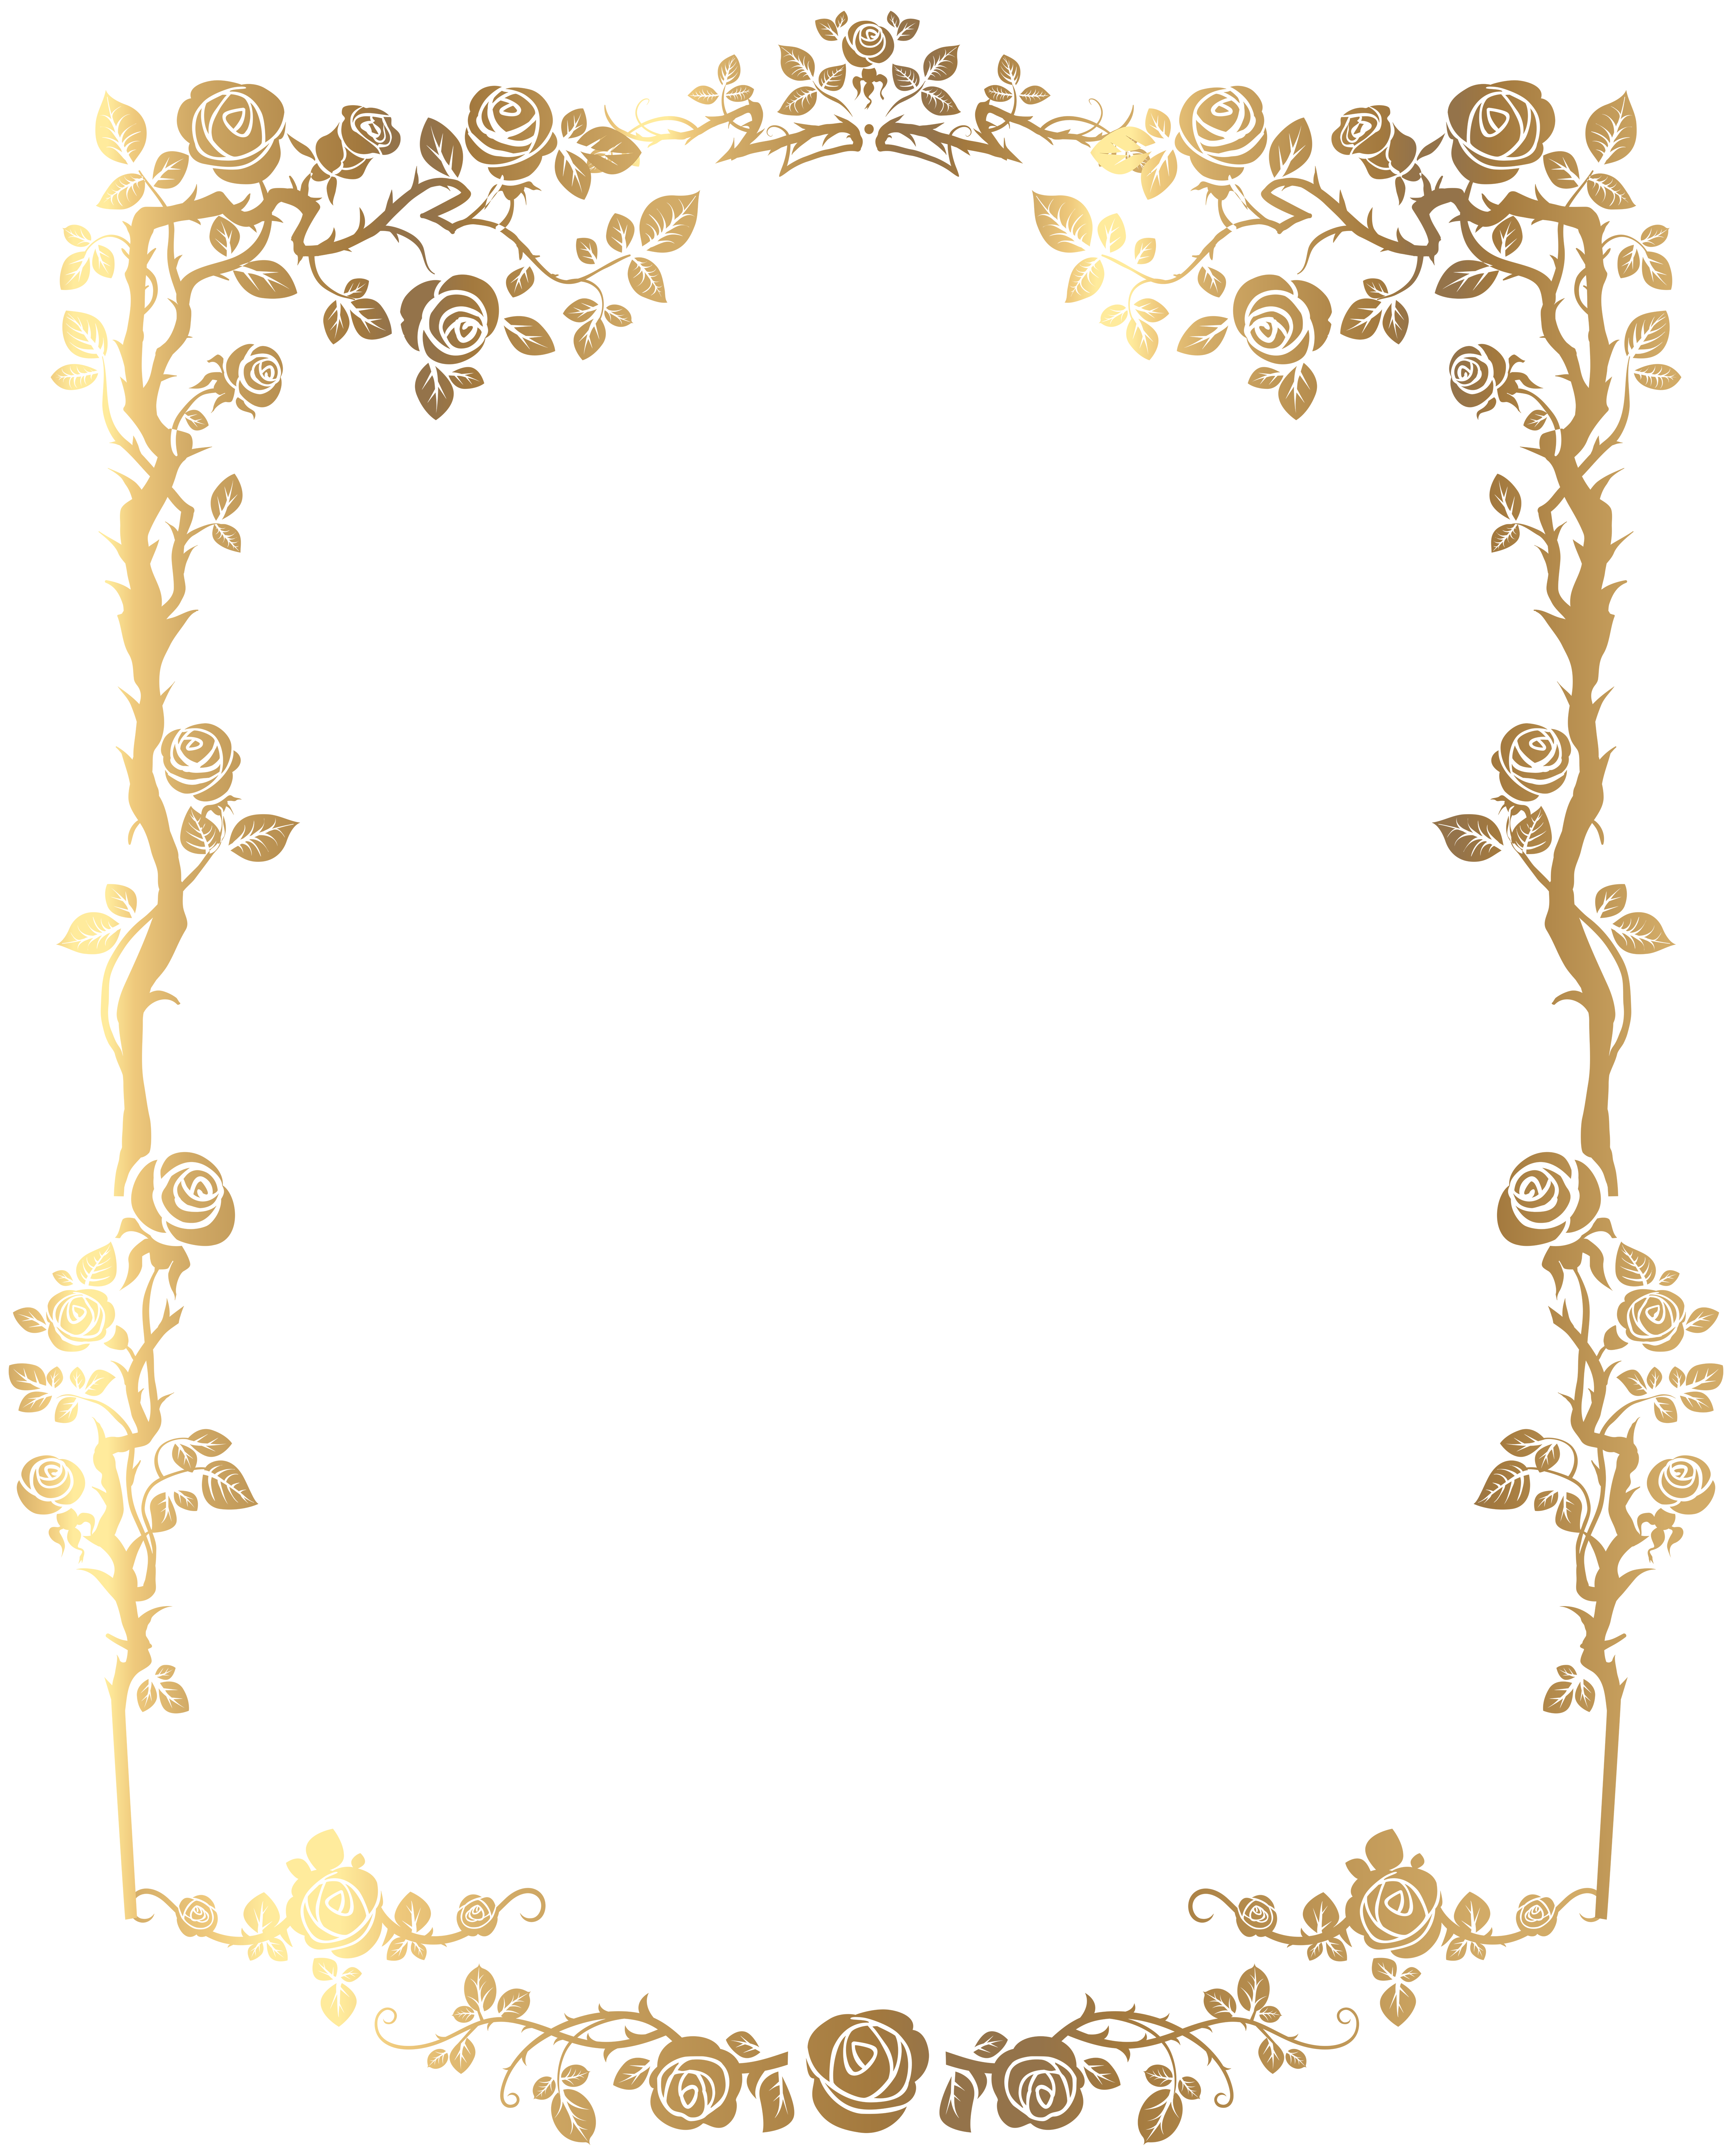 Download Picture Golden Frame French Rectangular Floral Border.